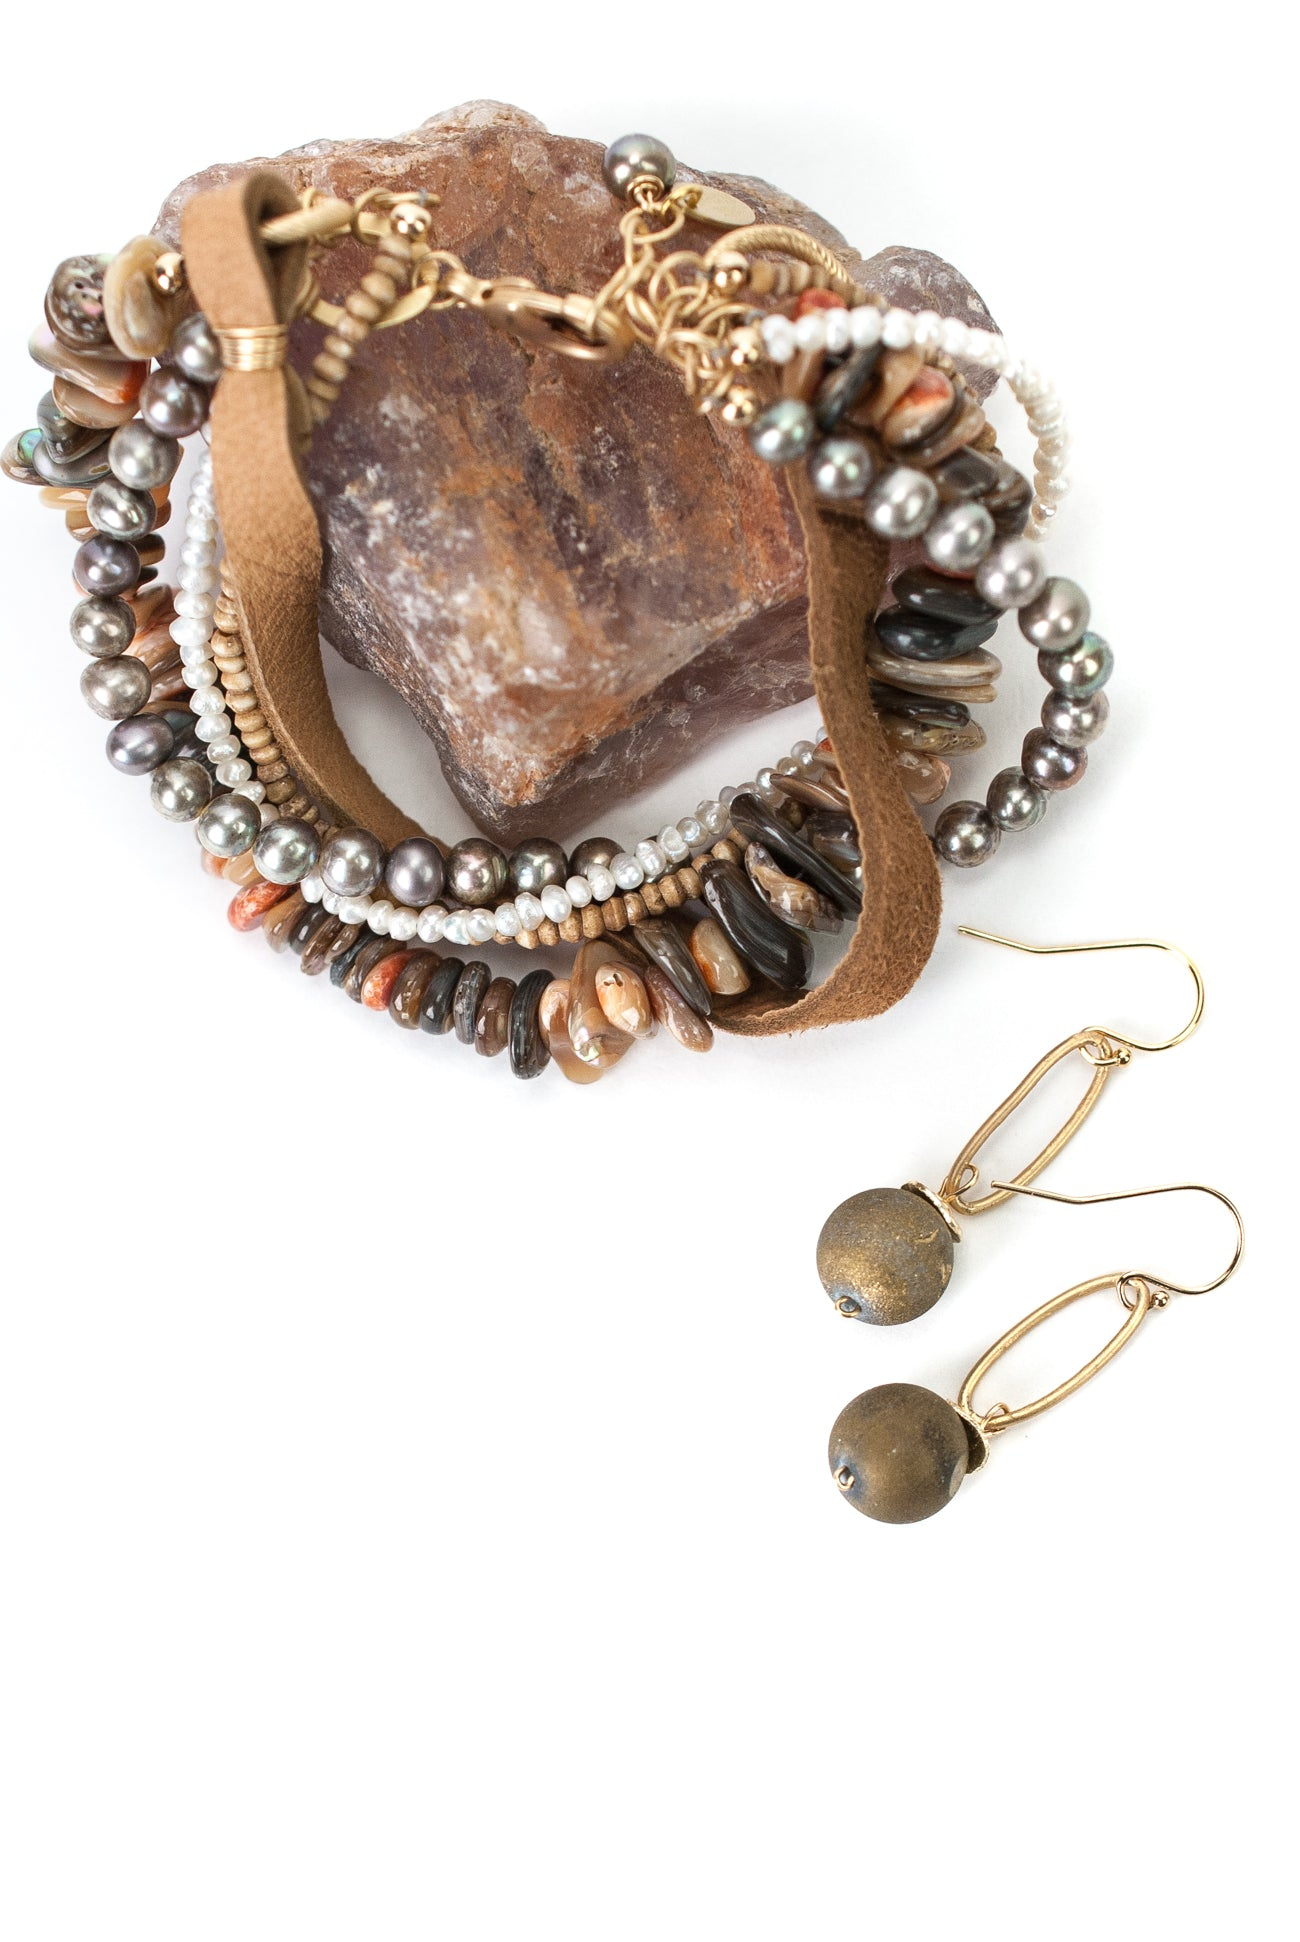 One of a Kind Druzy, Shell, Pearl, Leather Bracelet and Earrings Set